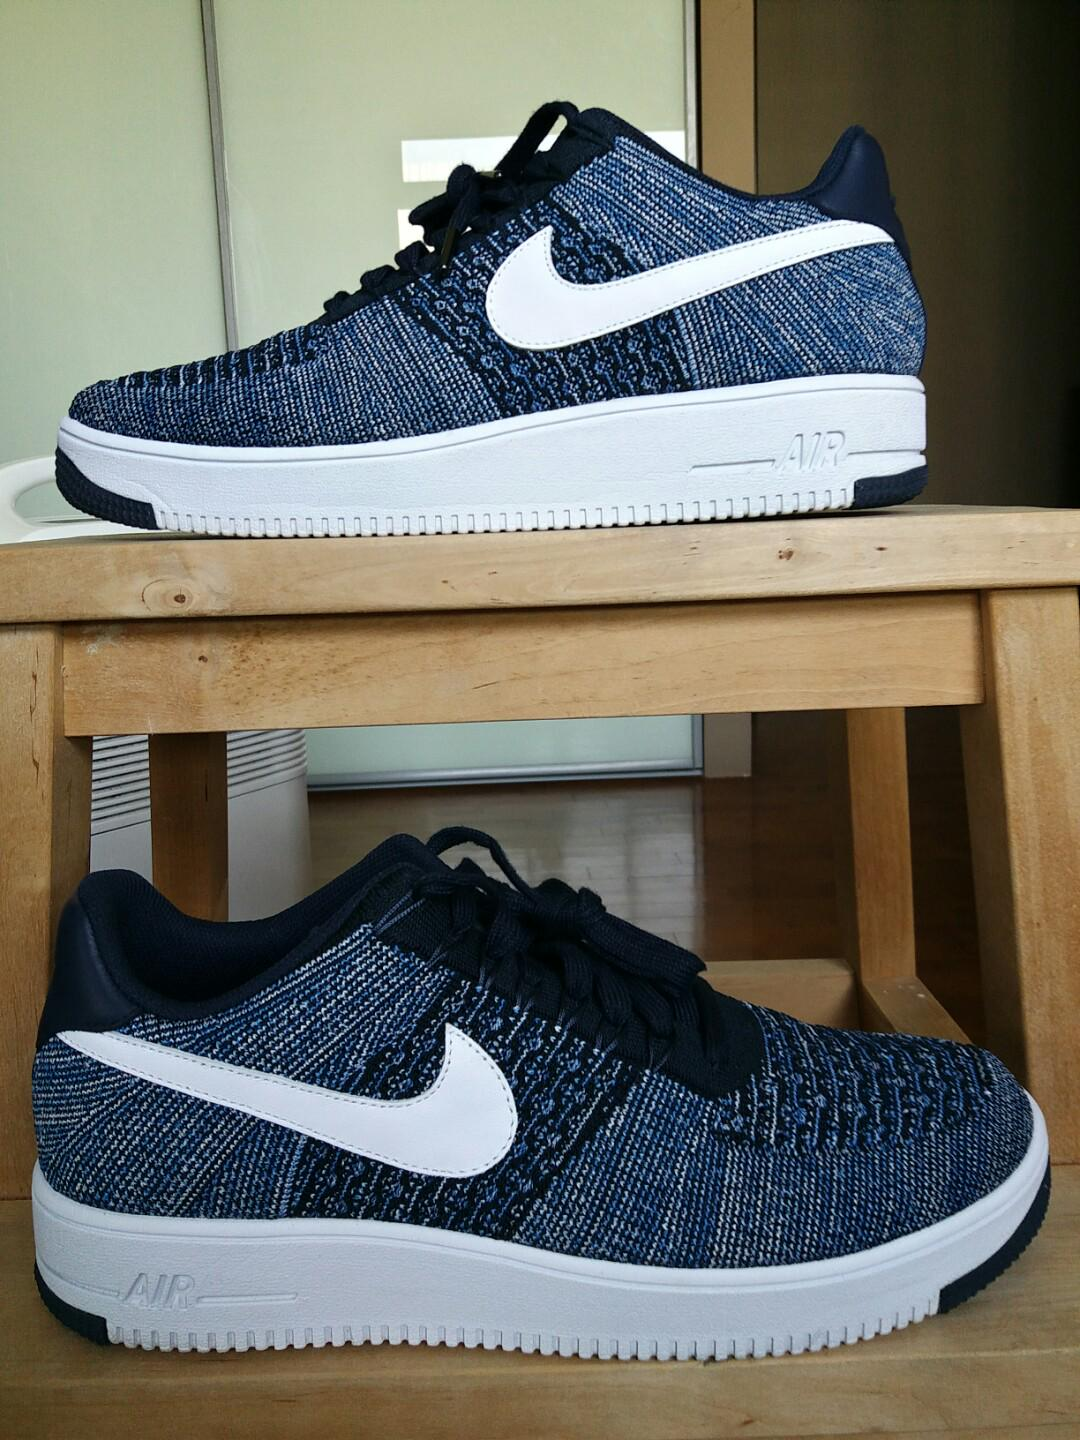 reputable site 182c1 6a9b9 Nike Air Force 1 Low Ultra FLYKNIT US 12 / UK 11 / EUR 46 ...